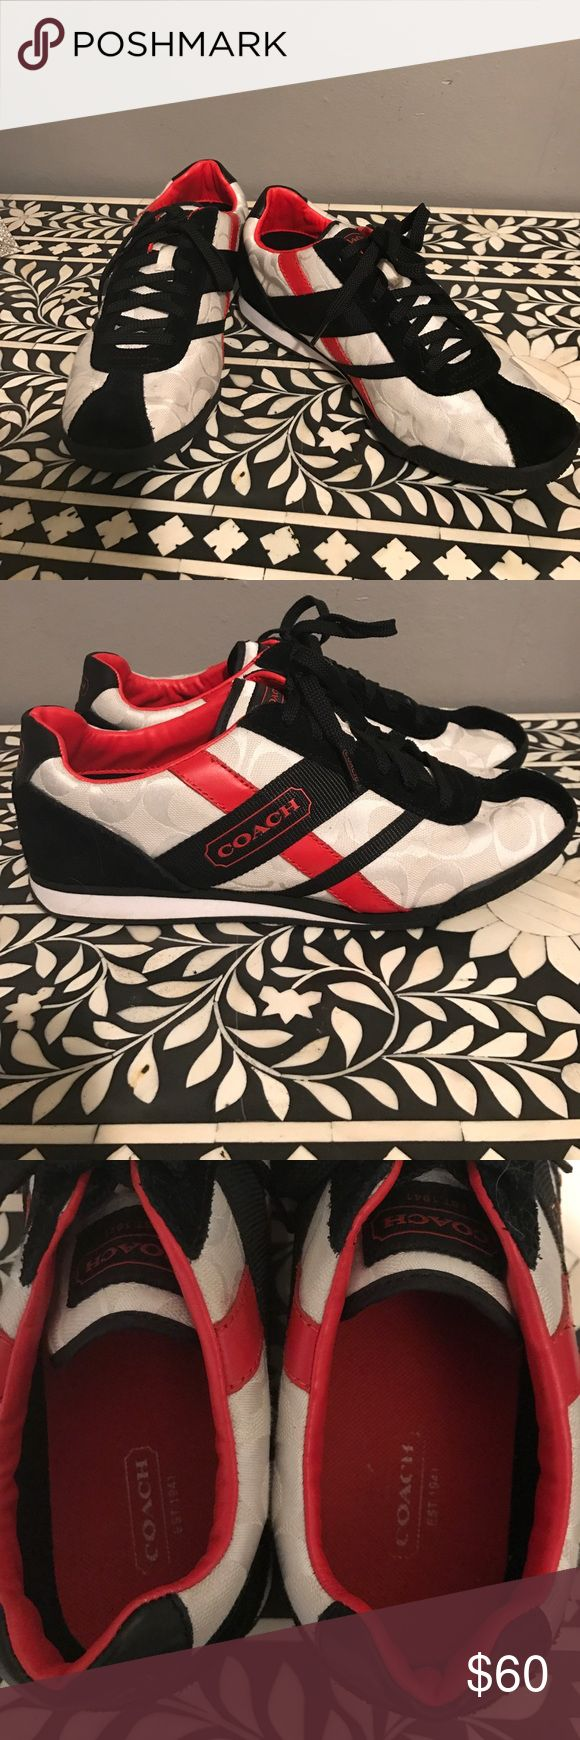 "Red, white, and black Coach tennis shoes Coach tennis shoes featuring red and black leather accents on a white ""C"" logo background. Worn once, perfect condition. Size 9. Coach Shoes Sneakers"